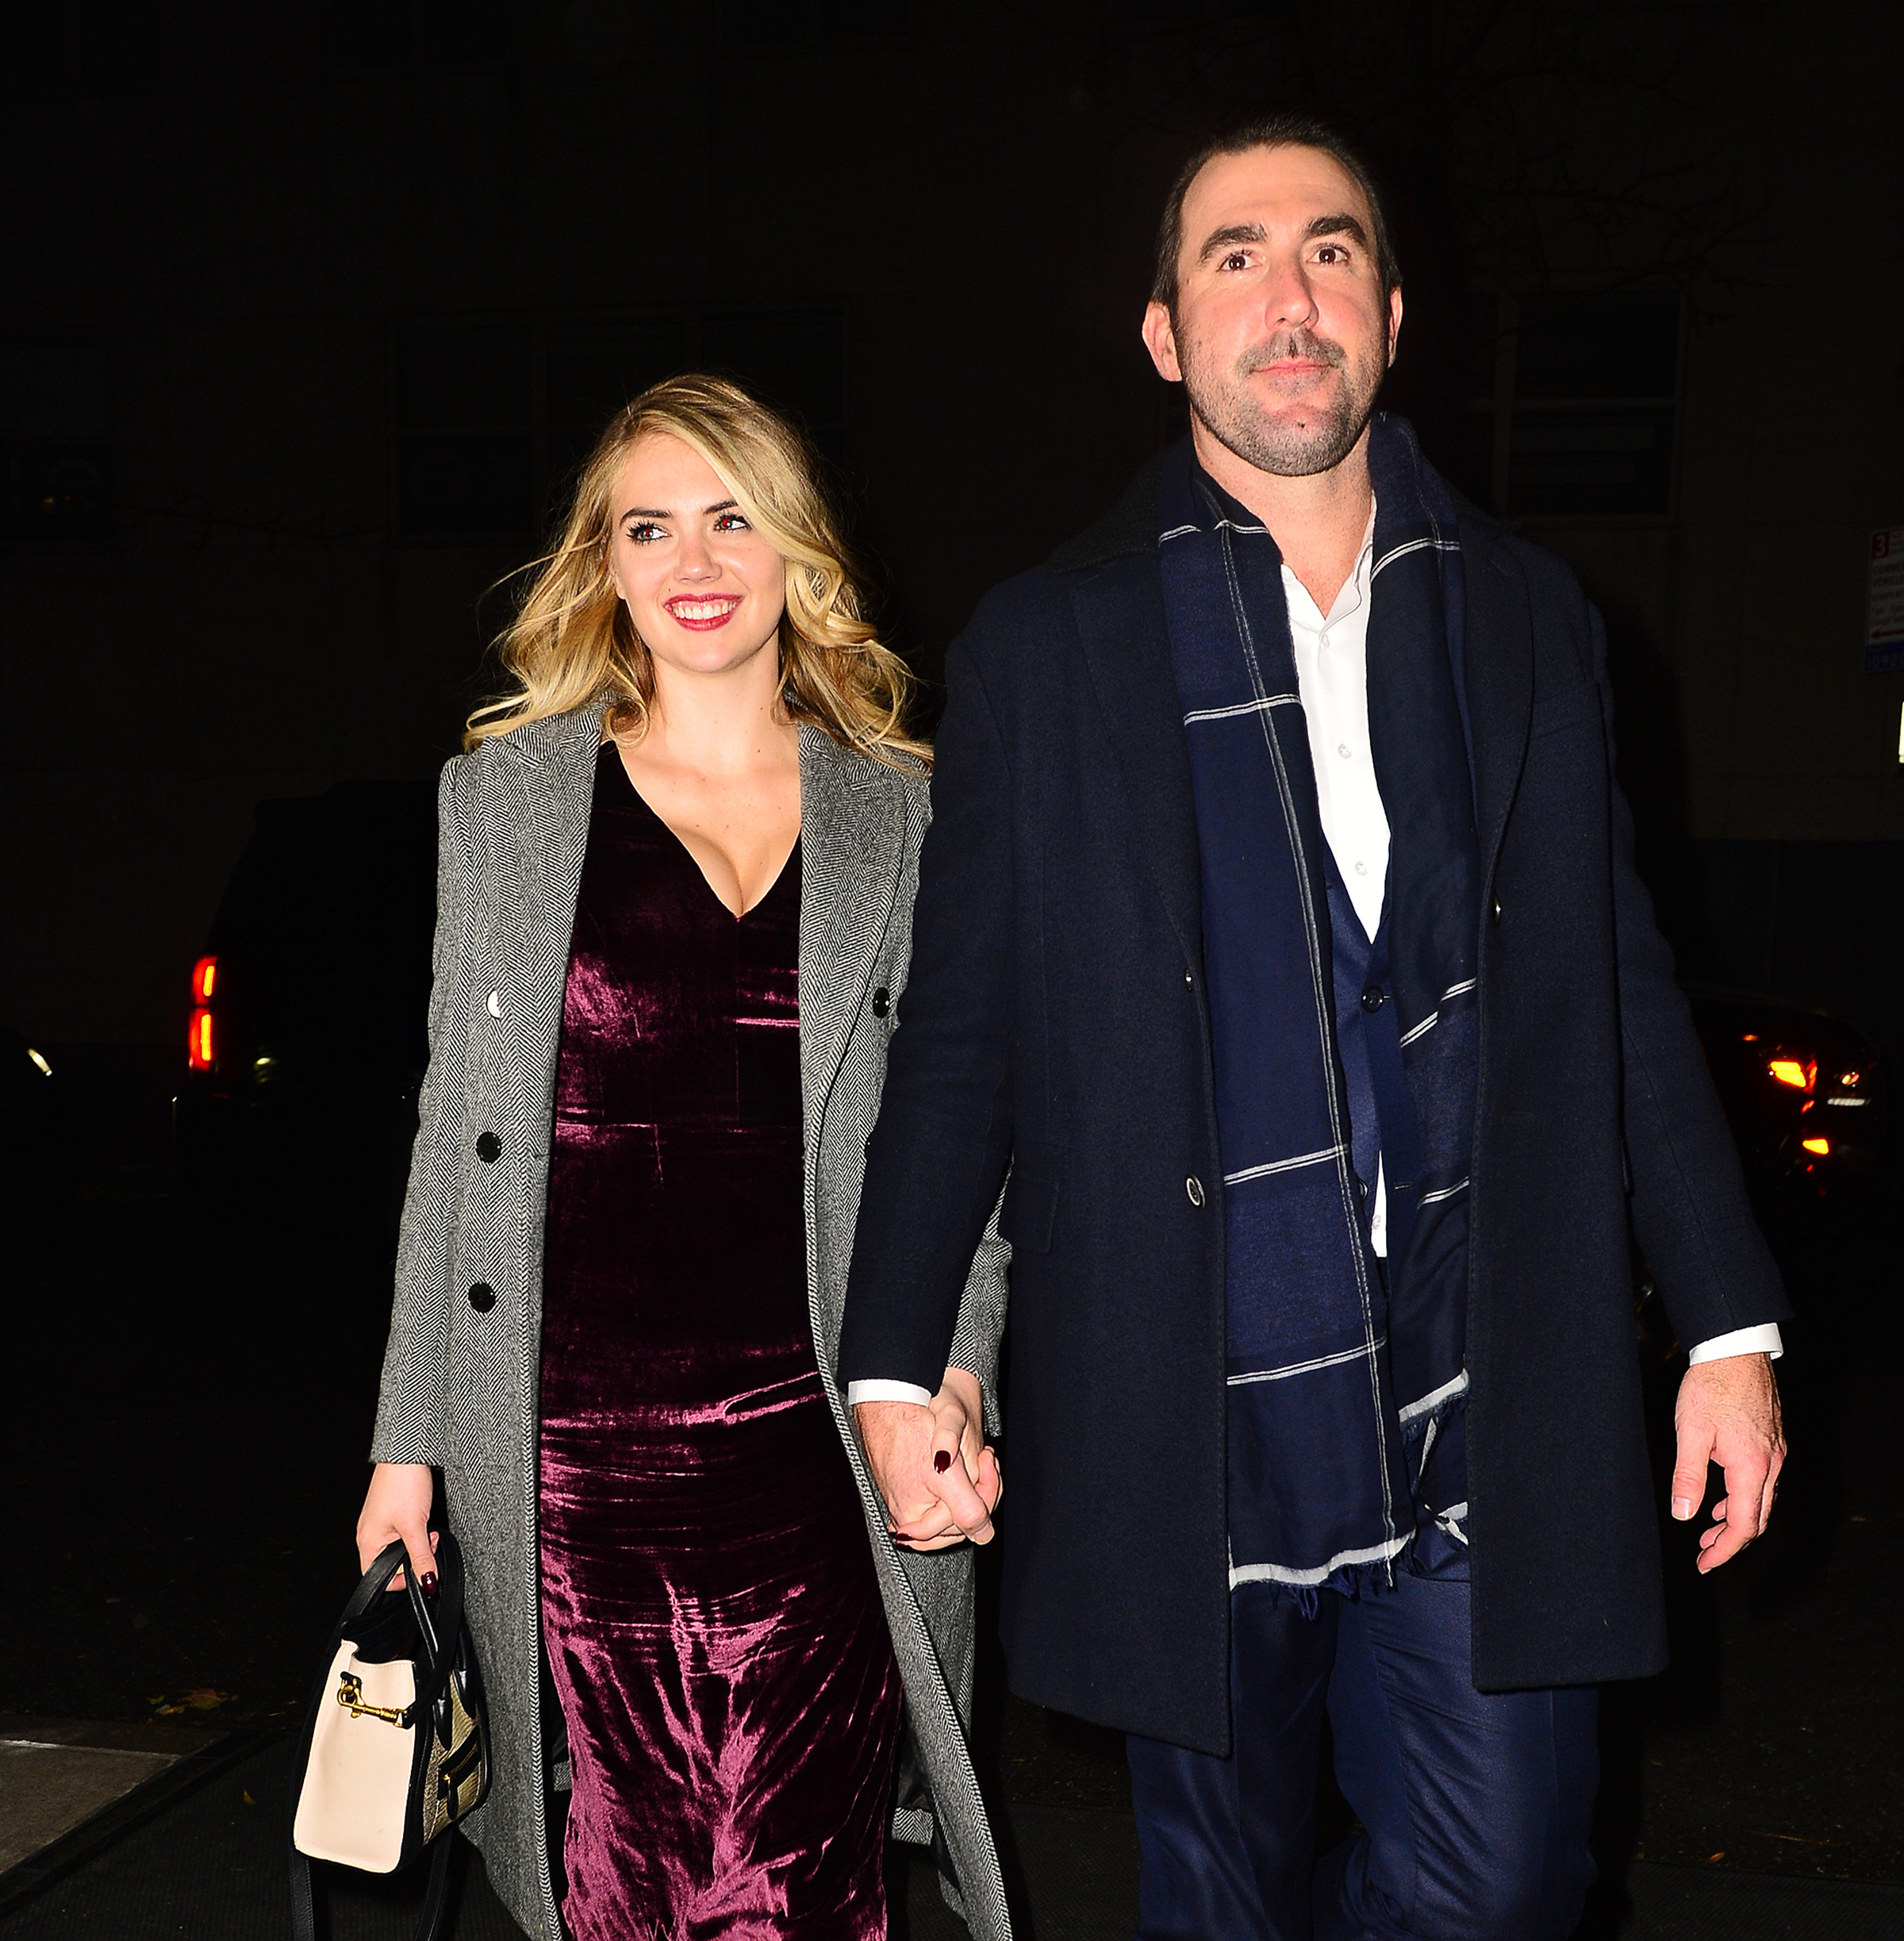 Kate Upton and Justin Verlander are all smiles as they arrive hand in hand to The Polo Bar in New York City on Nov. 18, 2017.